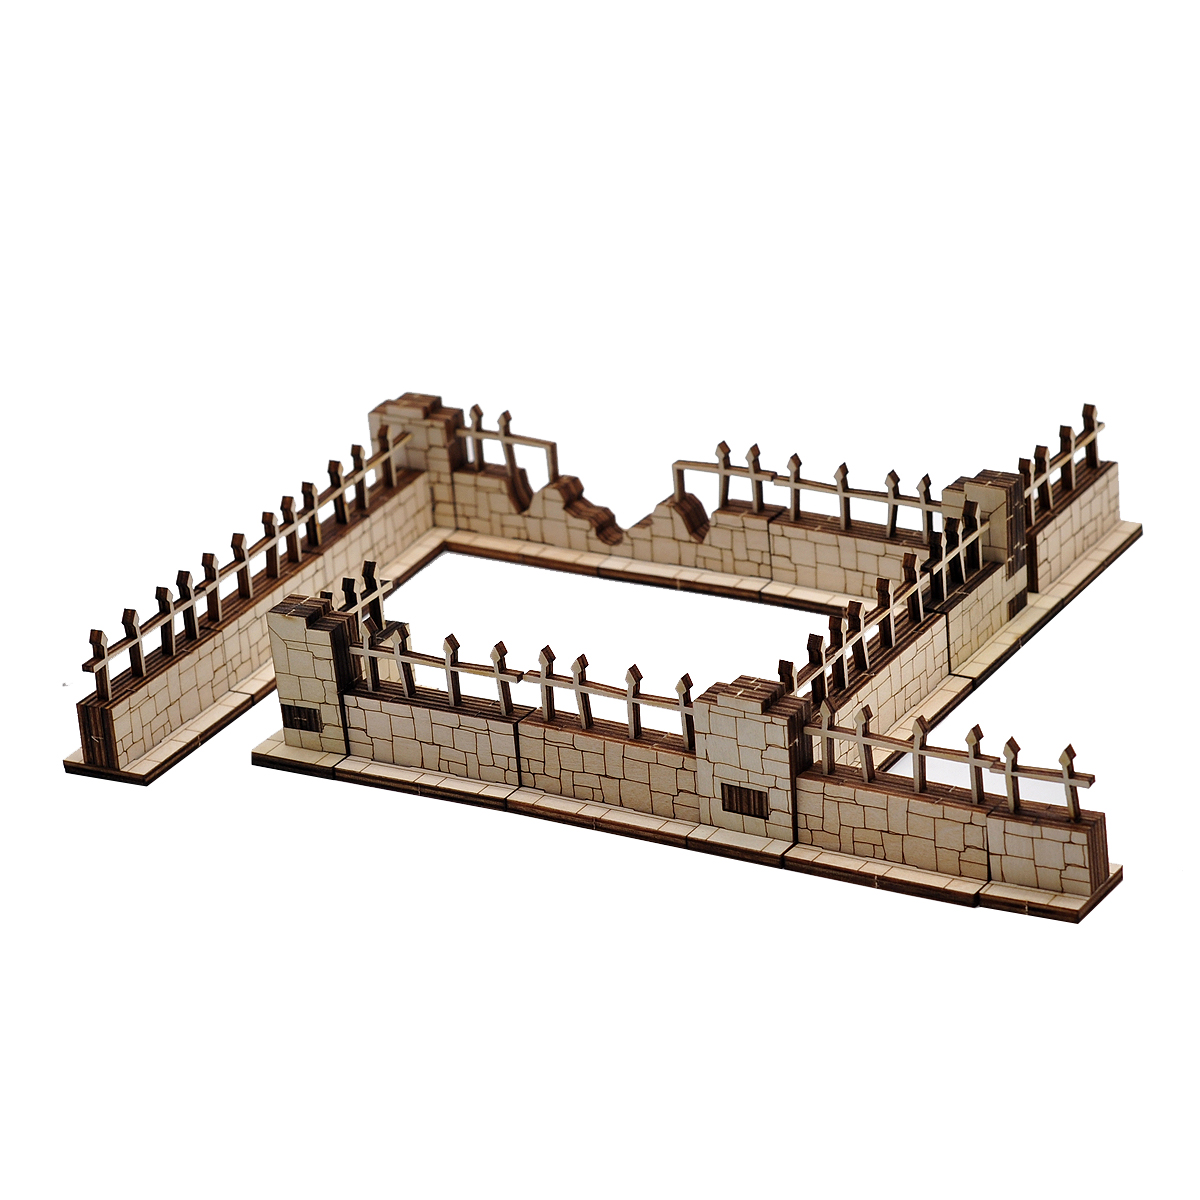 CZYY D&D Brick and Iron Fences Miniature (Set of 16) Wood Laser Cut Modular Fantasy Terrain 28mm Scale Perfect for Dungeons & Dragons, Warhammer and Other Tabletop RPG